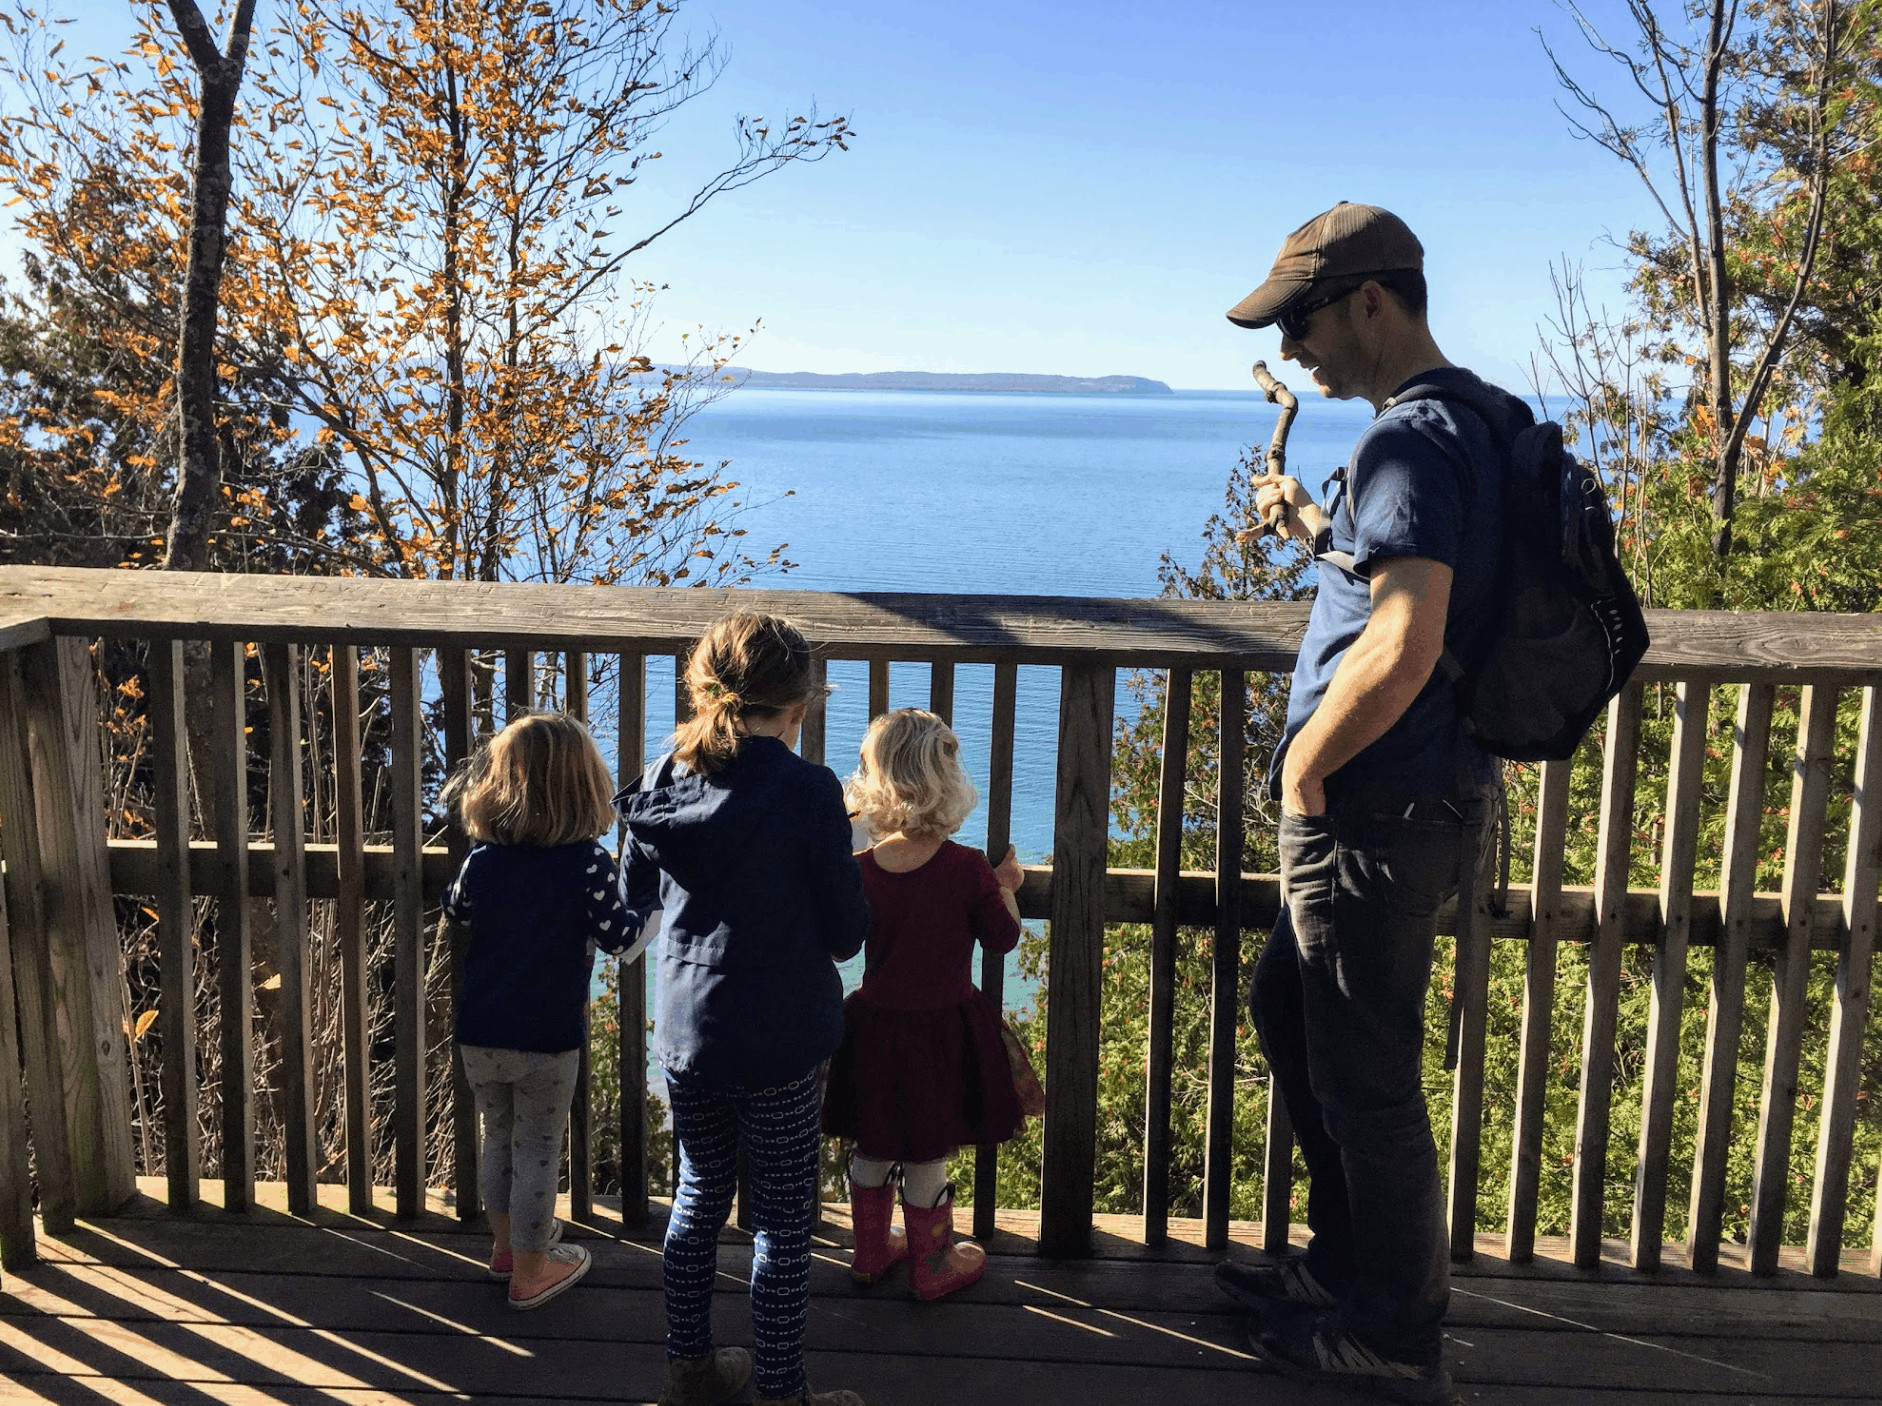 6 Great Hikes For The Whole Family In The Traverse City Region - The Awesome Mitten